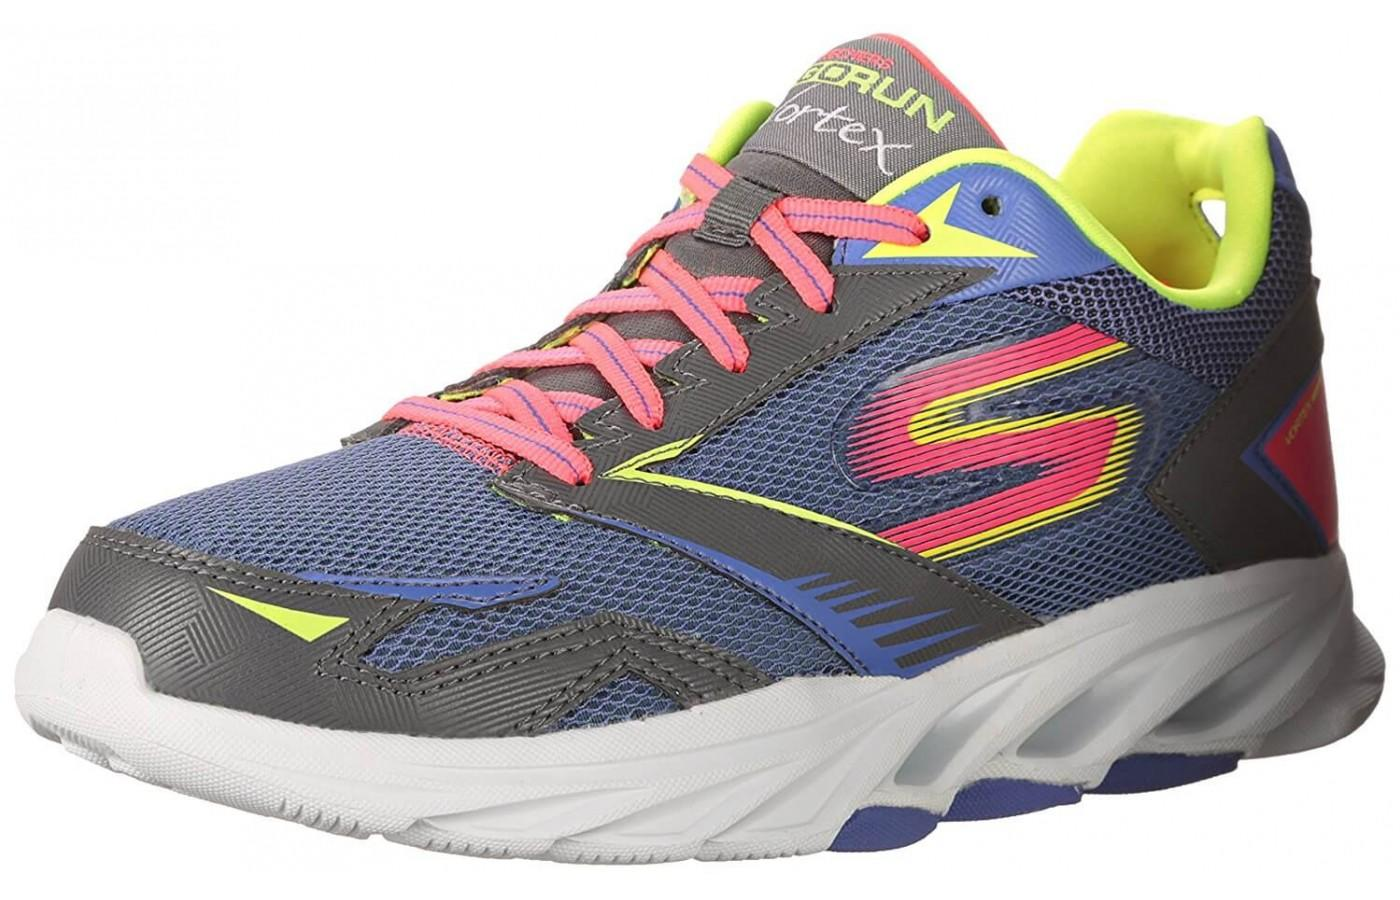 86bd3a5e ... Skechers GoRun Vortex comes in a cool 80s-style color option ...